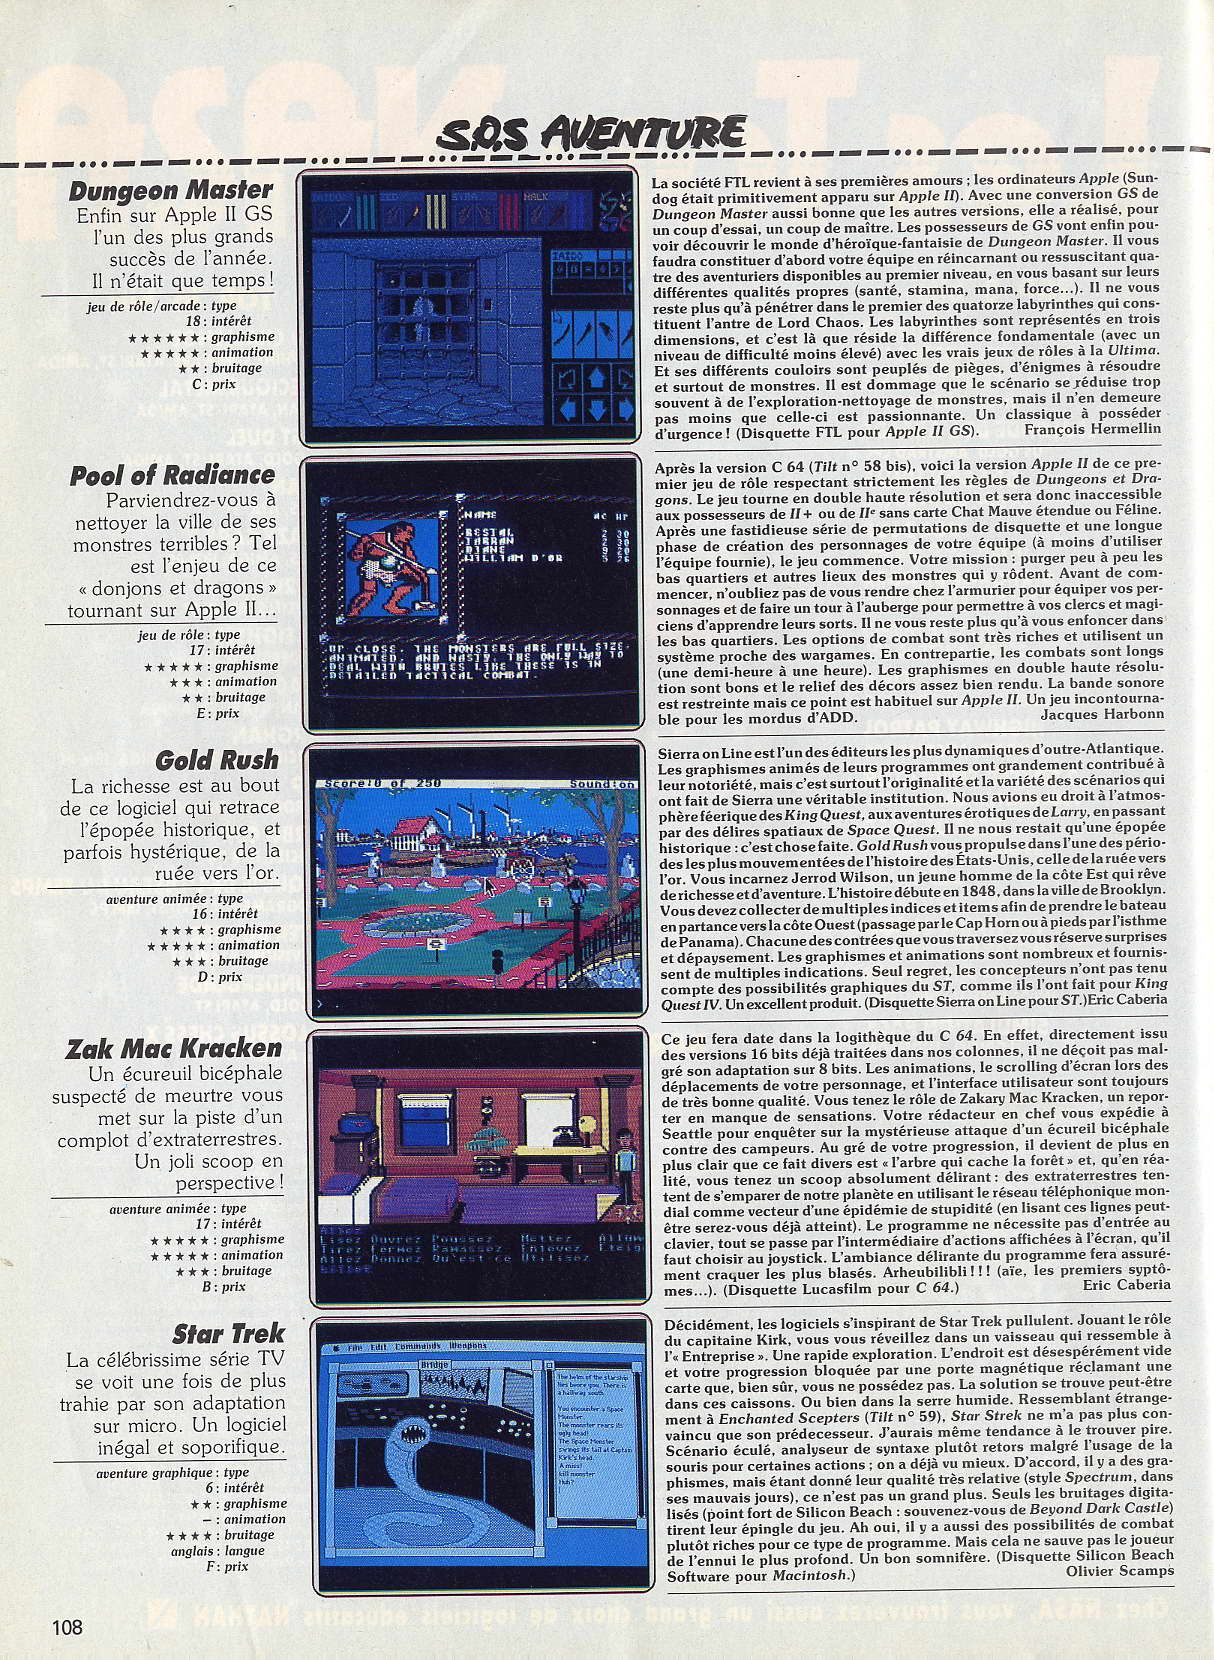 Dungeon Master for Apple IIGS Review published in French magazine 'Tilt', Issue #66, May 1989, Page 108